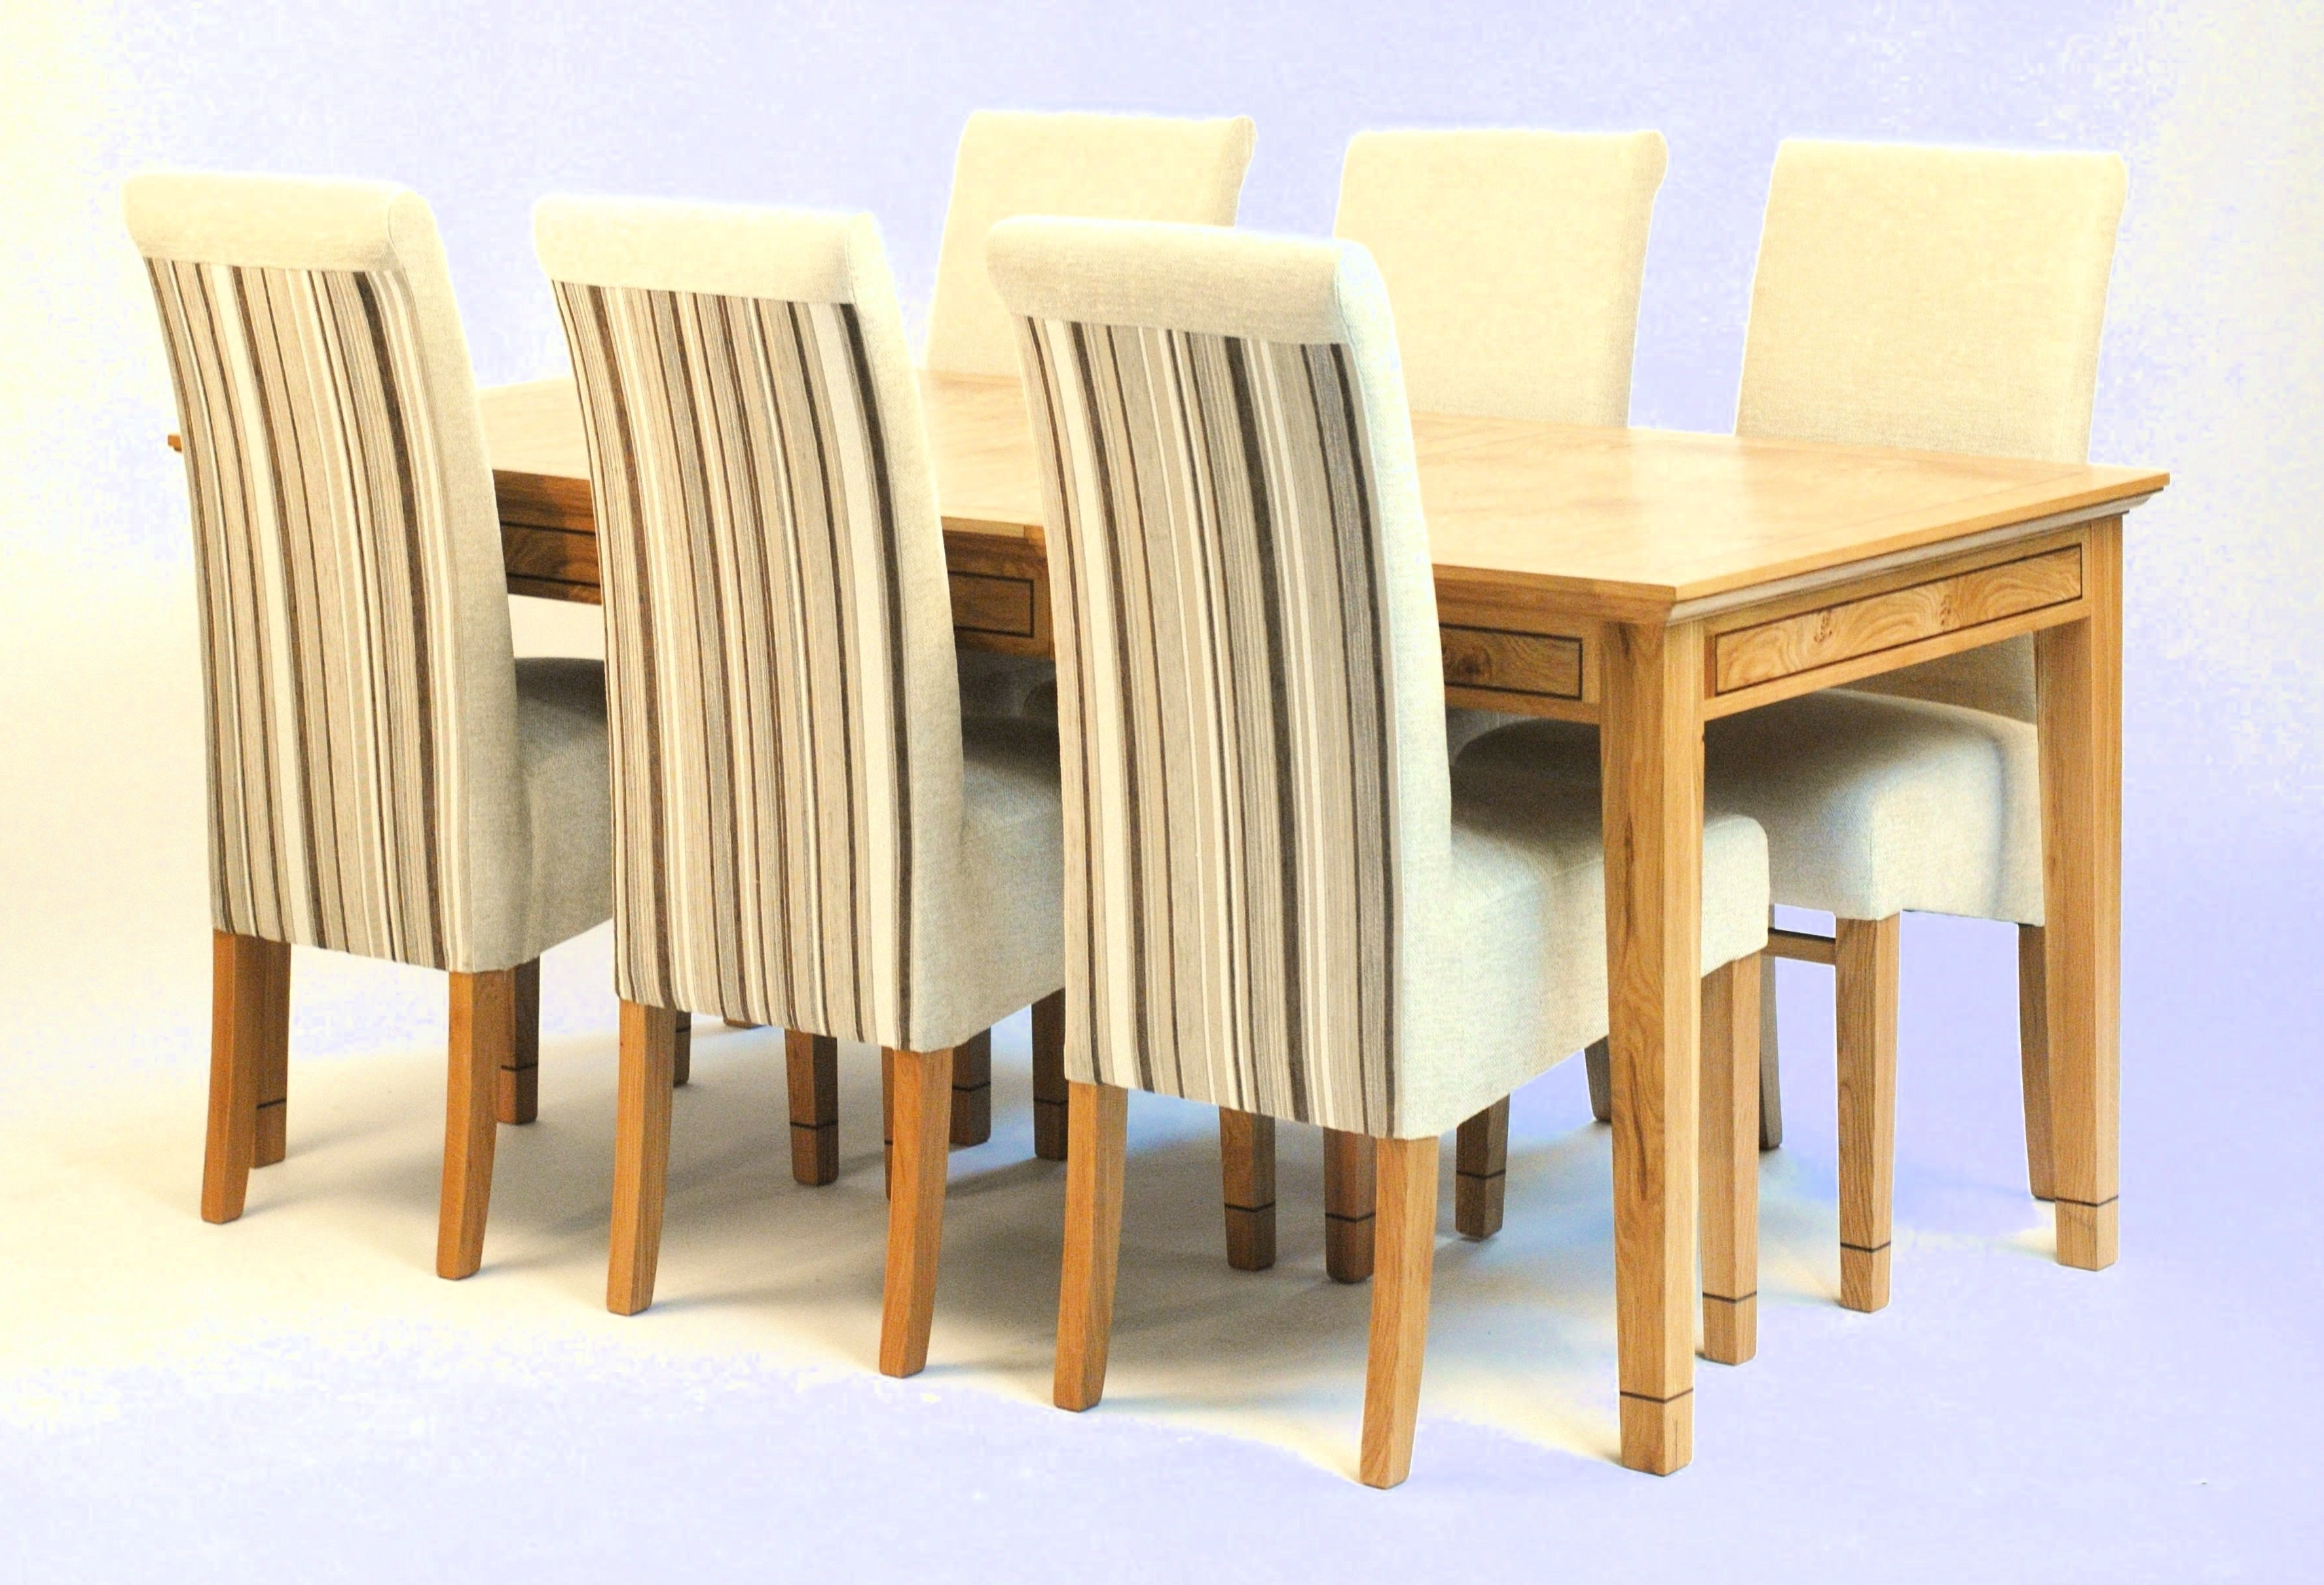 Oak Extending Dining Table & 6 Chairs Intended For Best And Newest Oak Dining Tables With 6 Chairs (View 13 of 25)